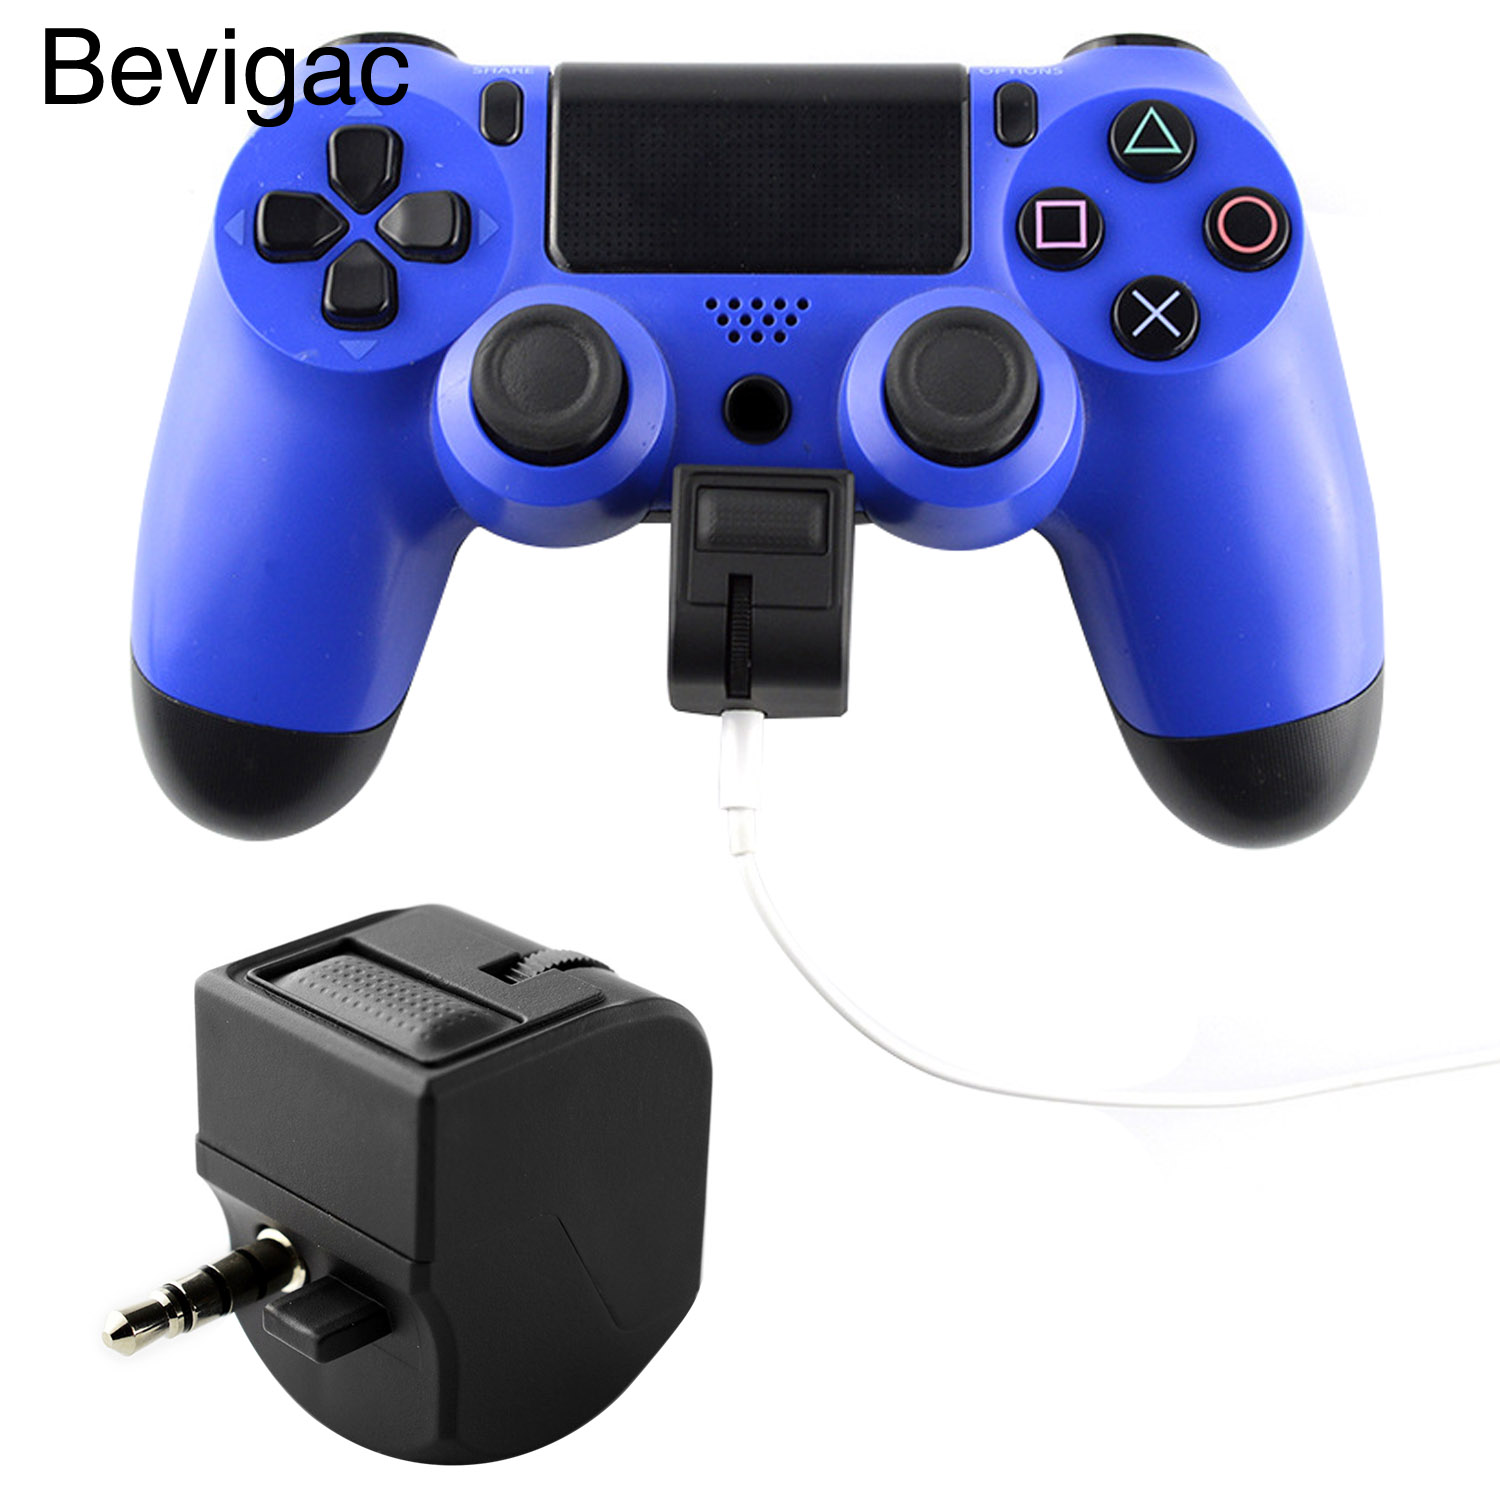 Bevigac 3.5mm Headphone Earphones Adapter w/Microphone Earphone Volume Control for <font><b>Sony</b></font> PlayStation 4 <font><b>PS4</b></font> Slim Pro Controller <font><b>VR</b></font> image